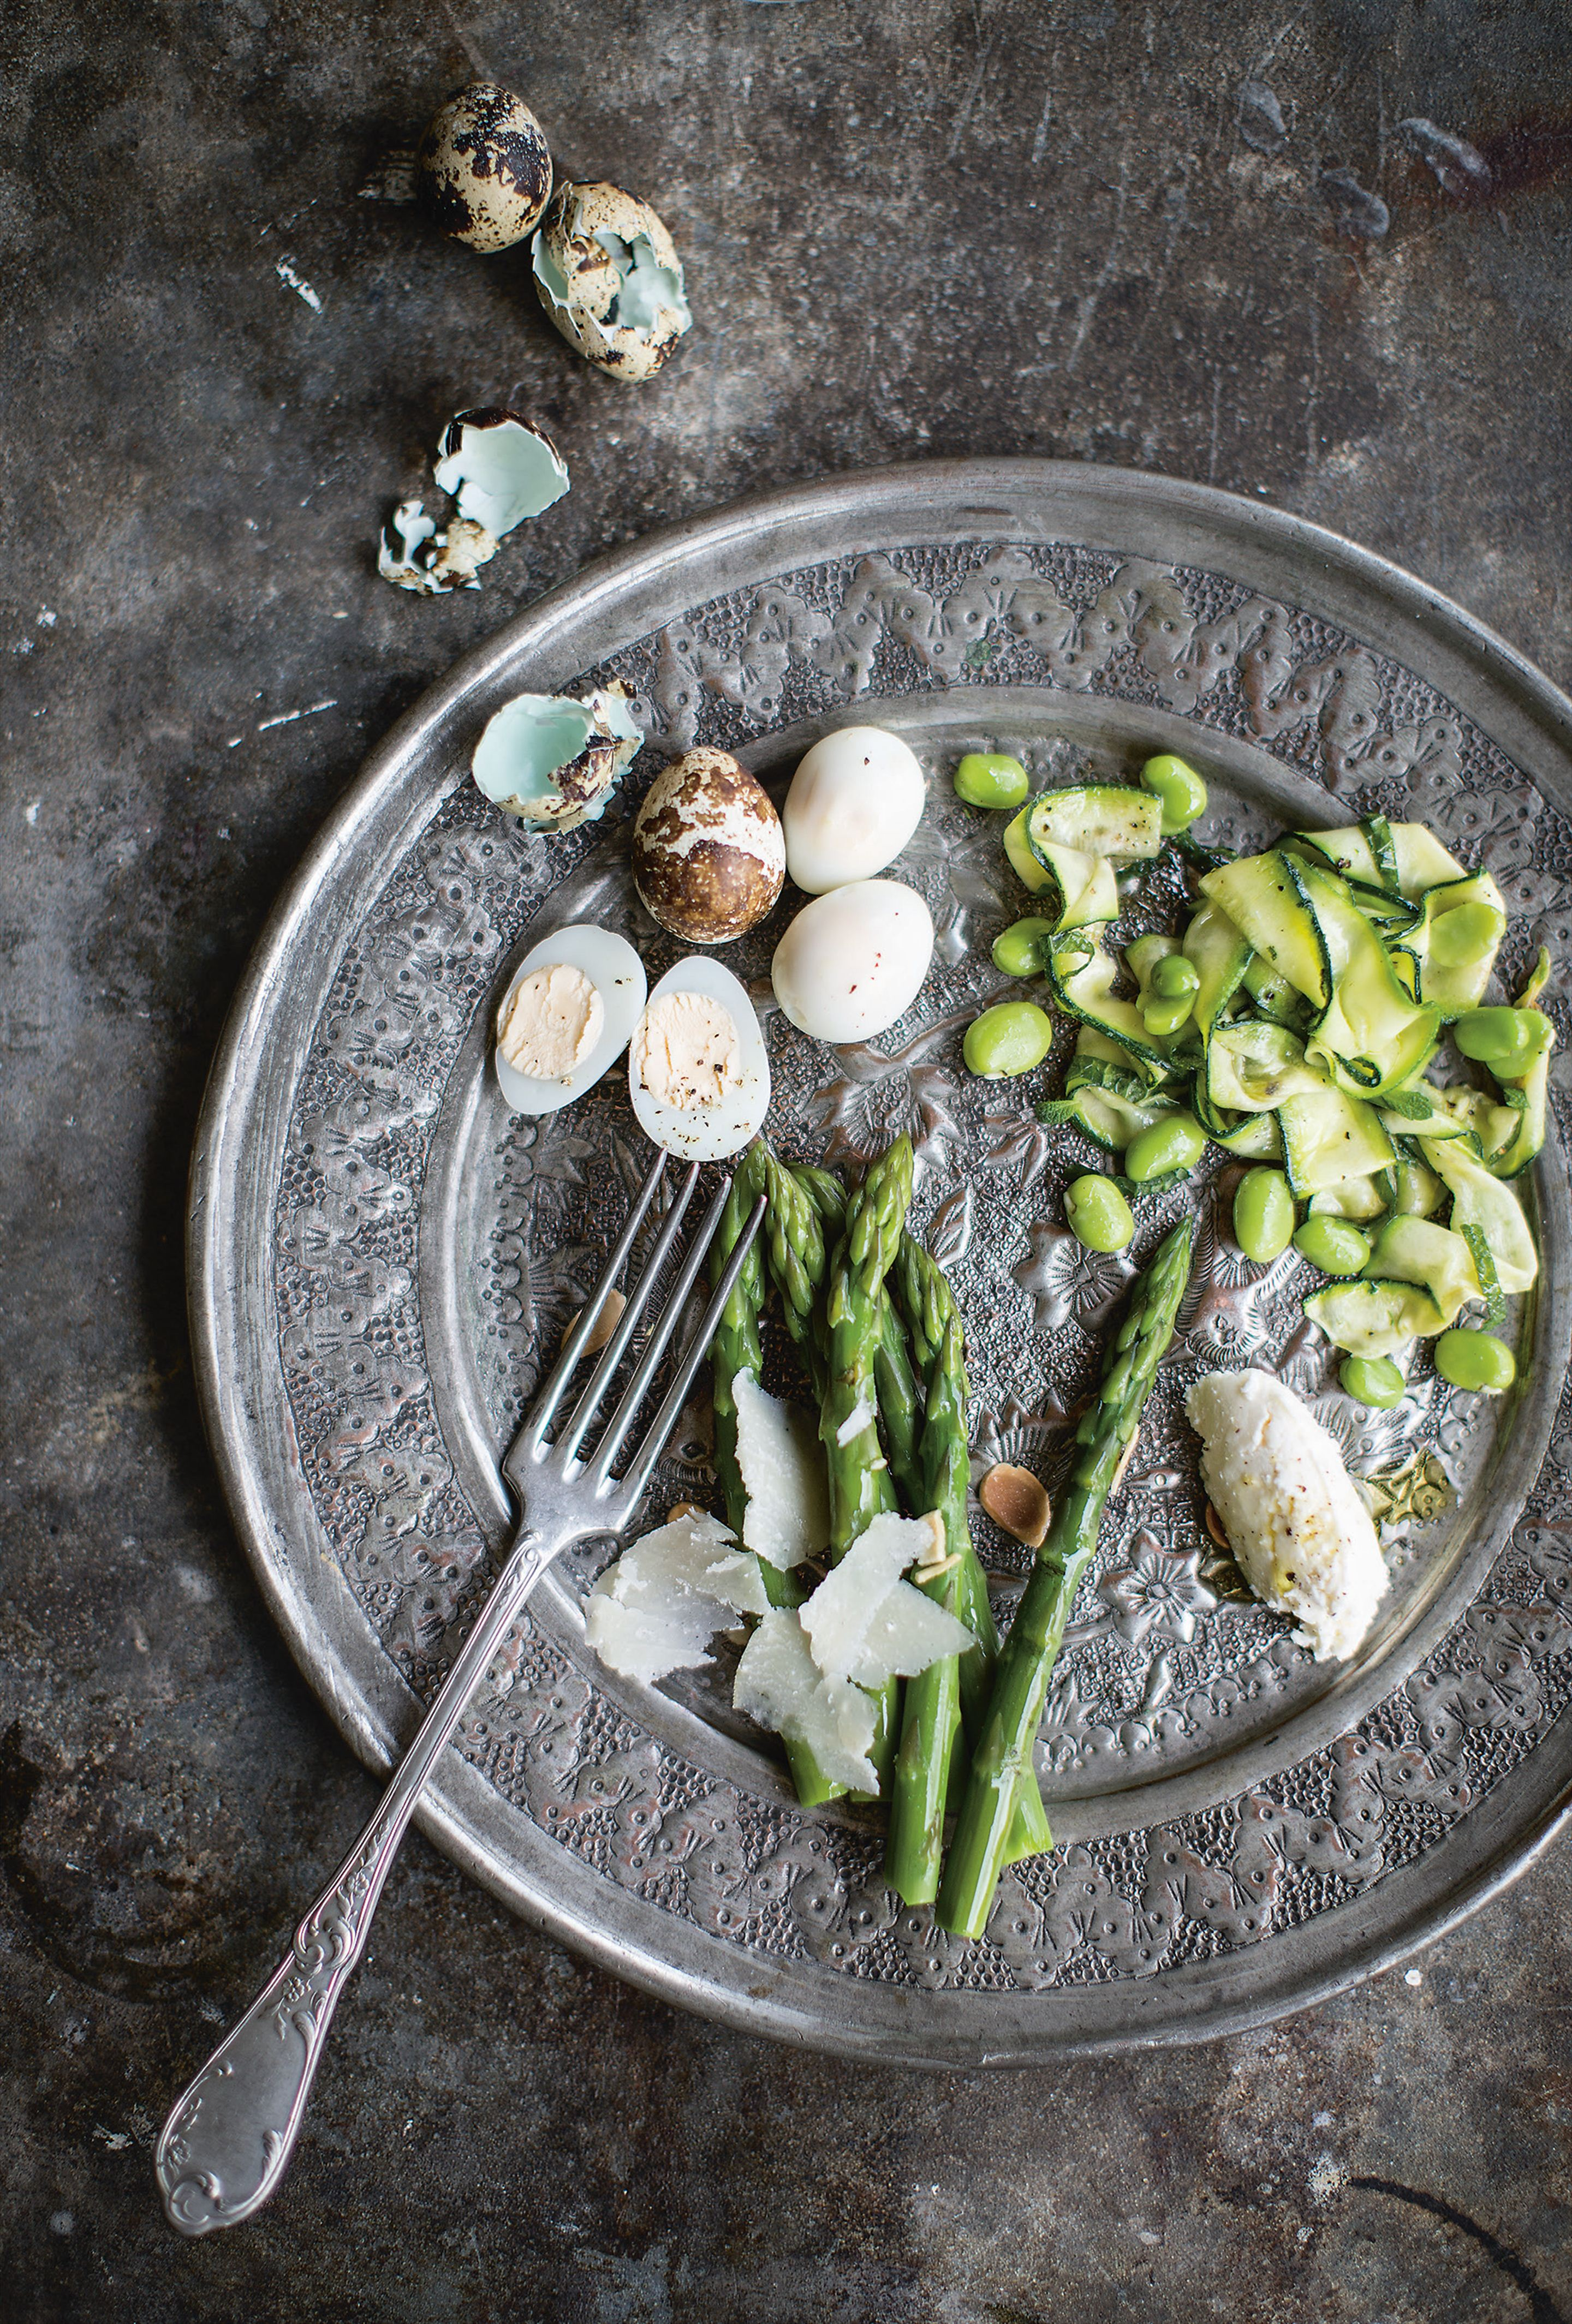 Broad bean, asparagus and courgette salad